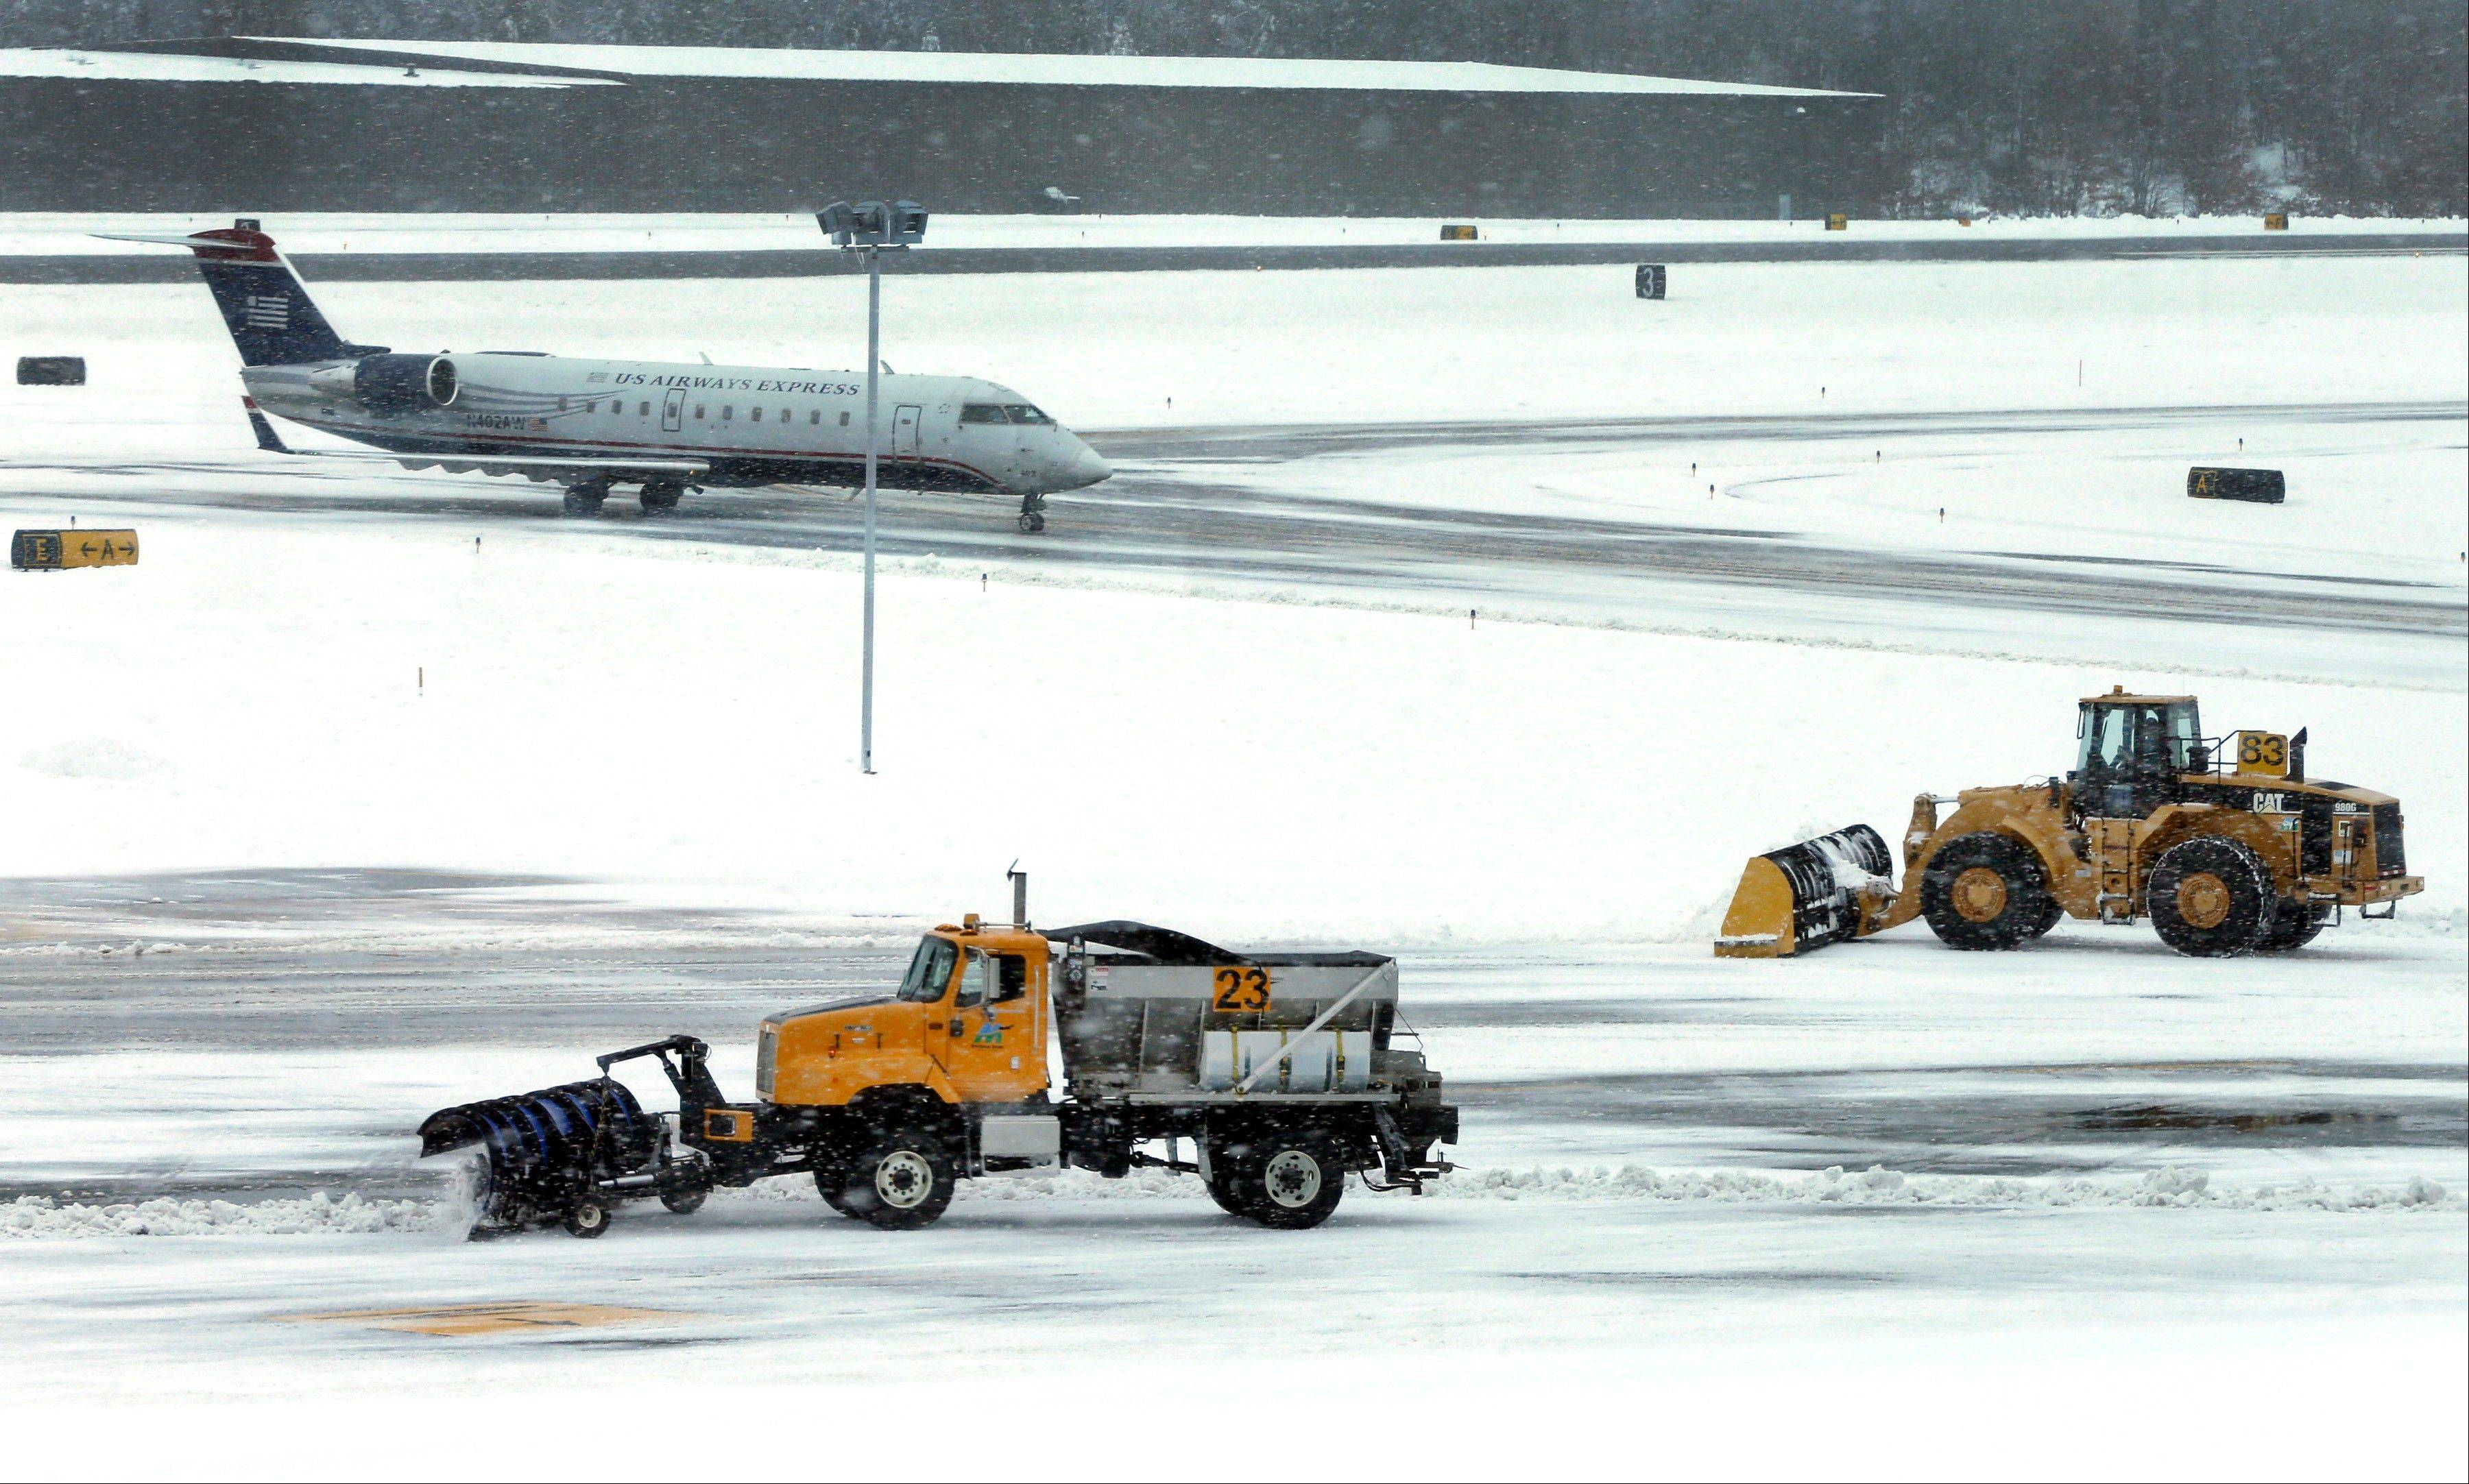 In this Thursday, Dec. 27, 2012 photo, snow is cleared on a runway as a plane taxis into Manchester-Boston Regional Airport in Manchester, N.H. As the Northeast braces for its largest winter storm in more than a year, airlines are already employing a strategy that has served them well in recent years: Cancel flights early and keep planes, crews and passengers away from snowed-in airports.